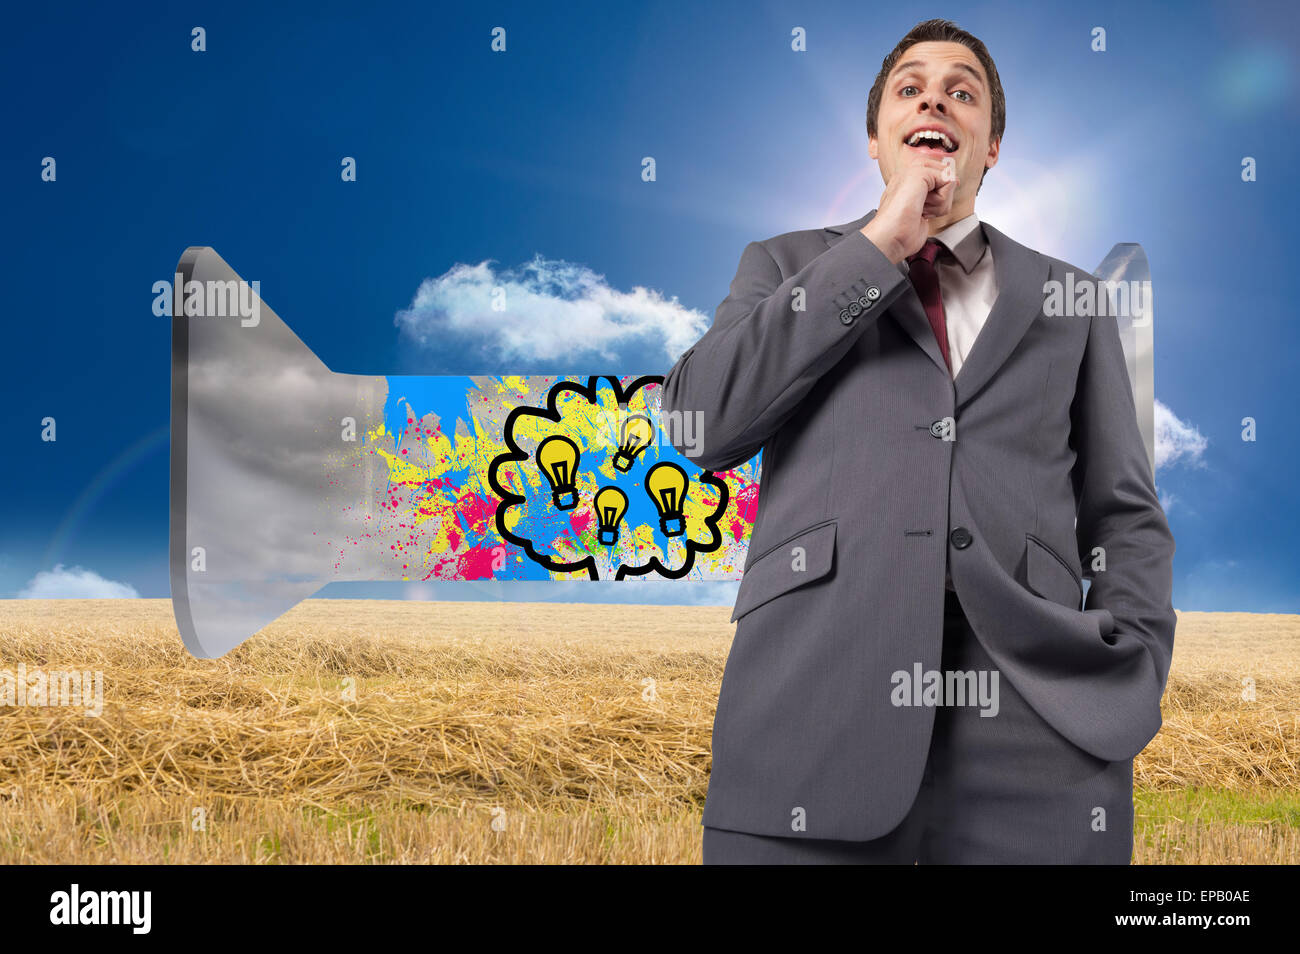 Composite image of thoughtful businessman with hand on chin Stock Photo